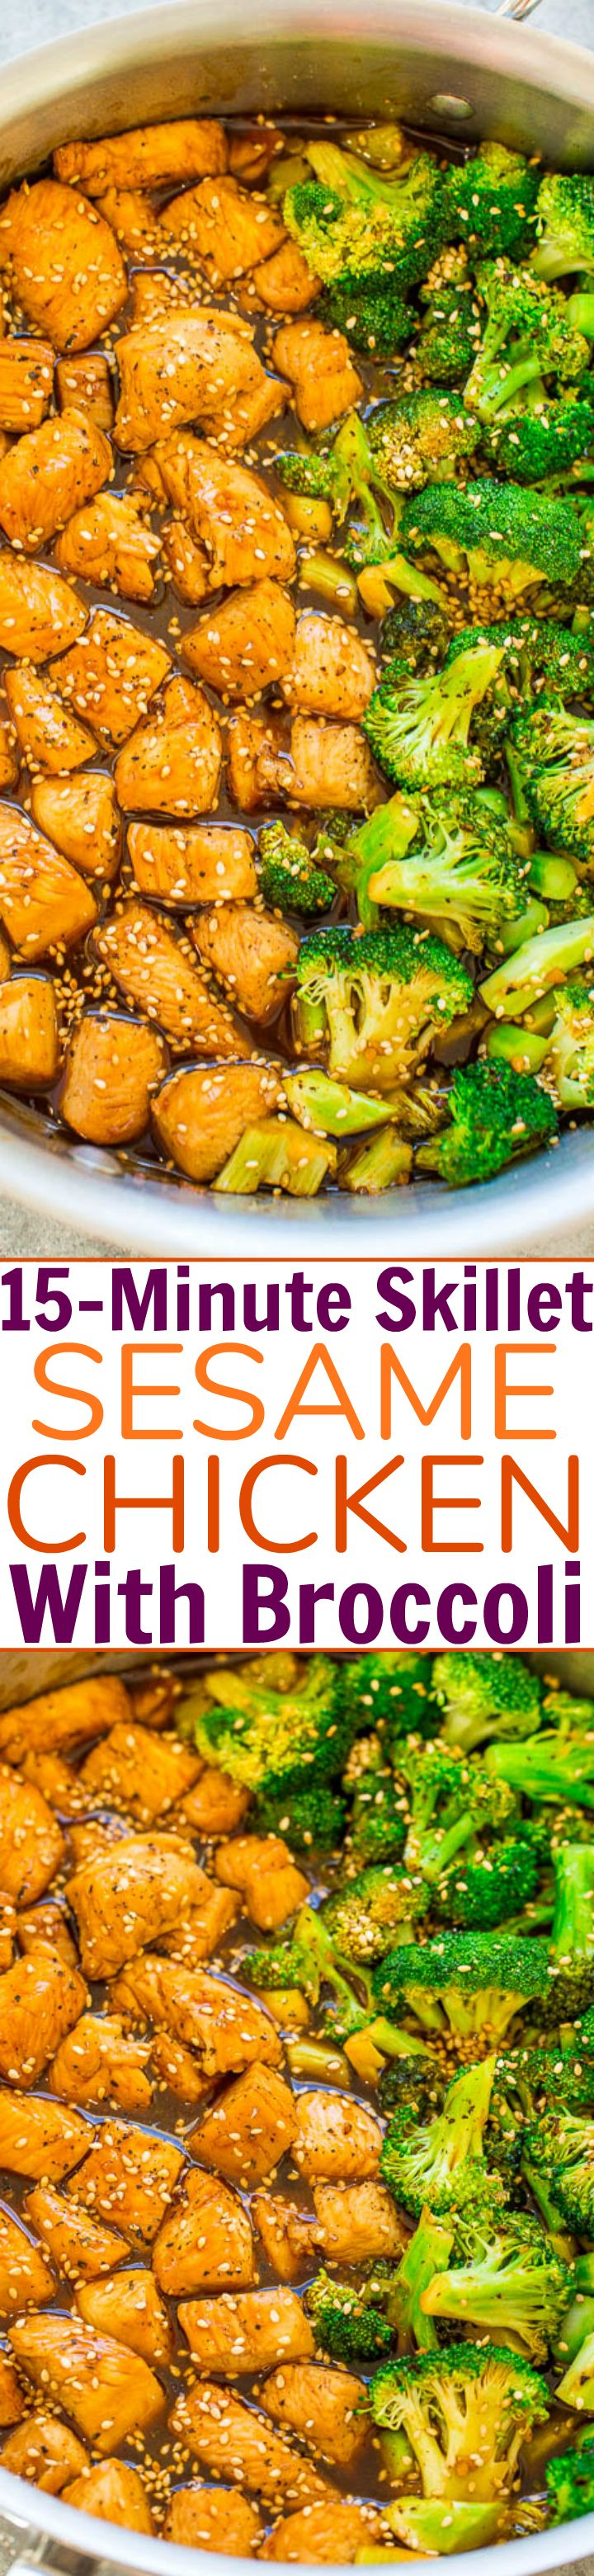 15-Minute Skillet Sesame Chicken with Broccoli – HEALTHIER sesame chicken that isn't breaded or fried!! You won't miss the fat or calories in this FAST and EASY version that's loaded with Asian-inspired flavors! You can happily skip takeout now!!